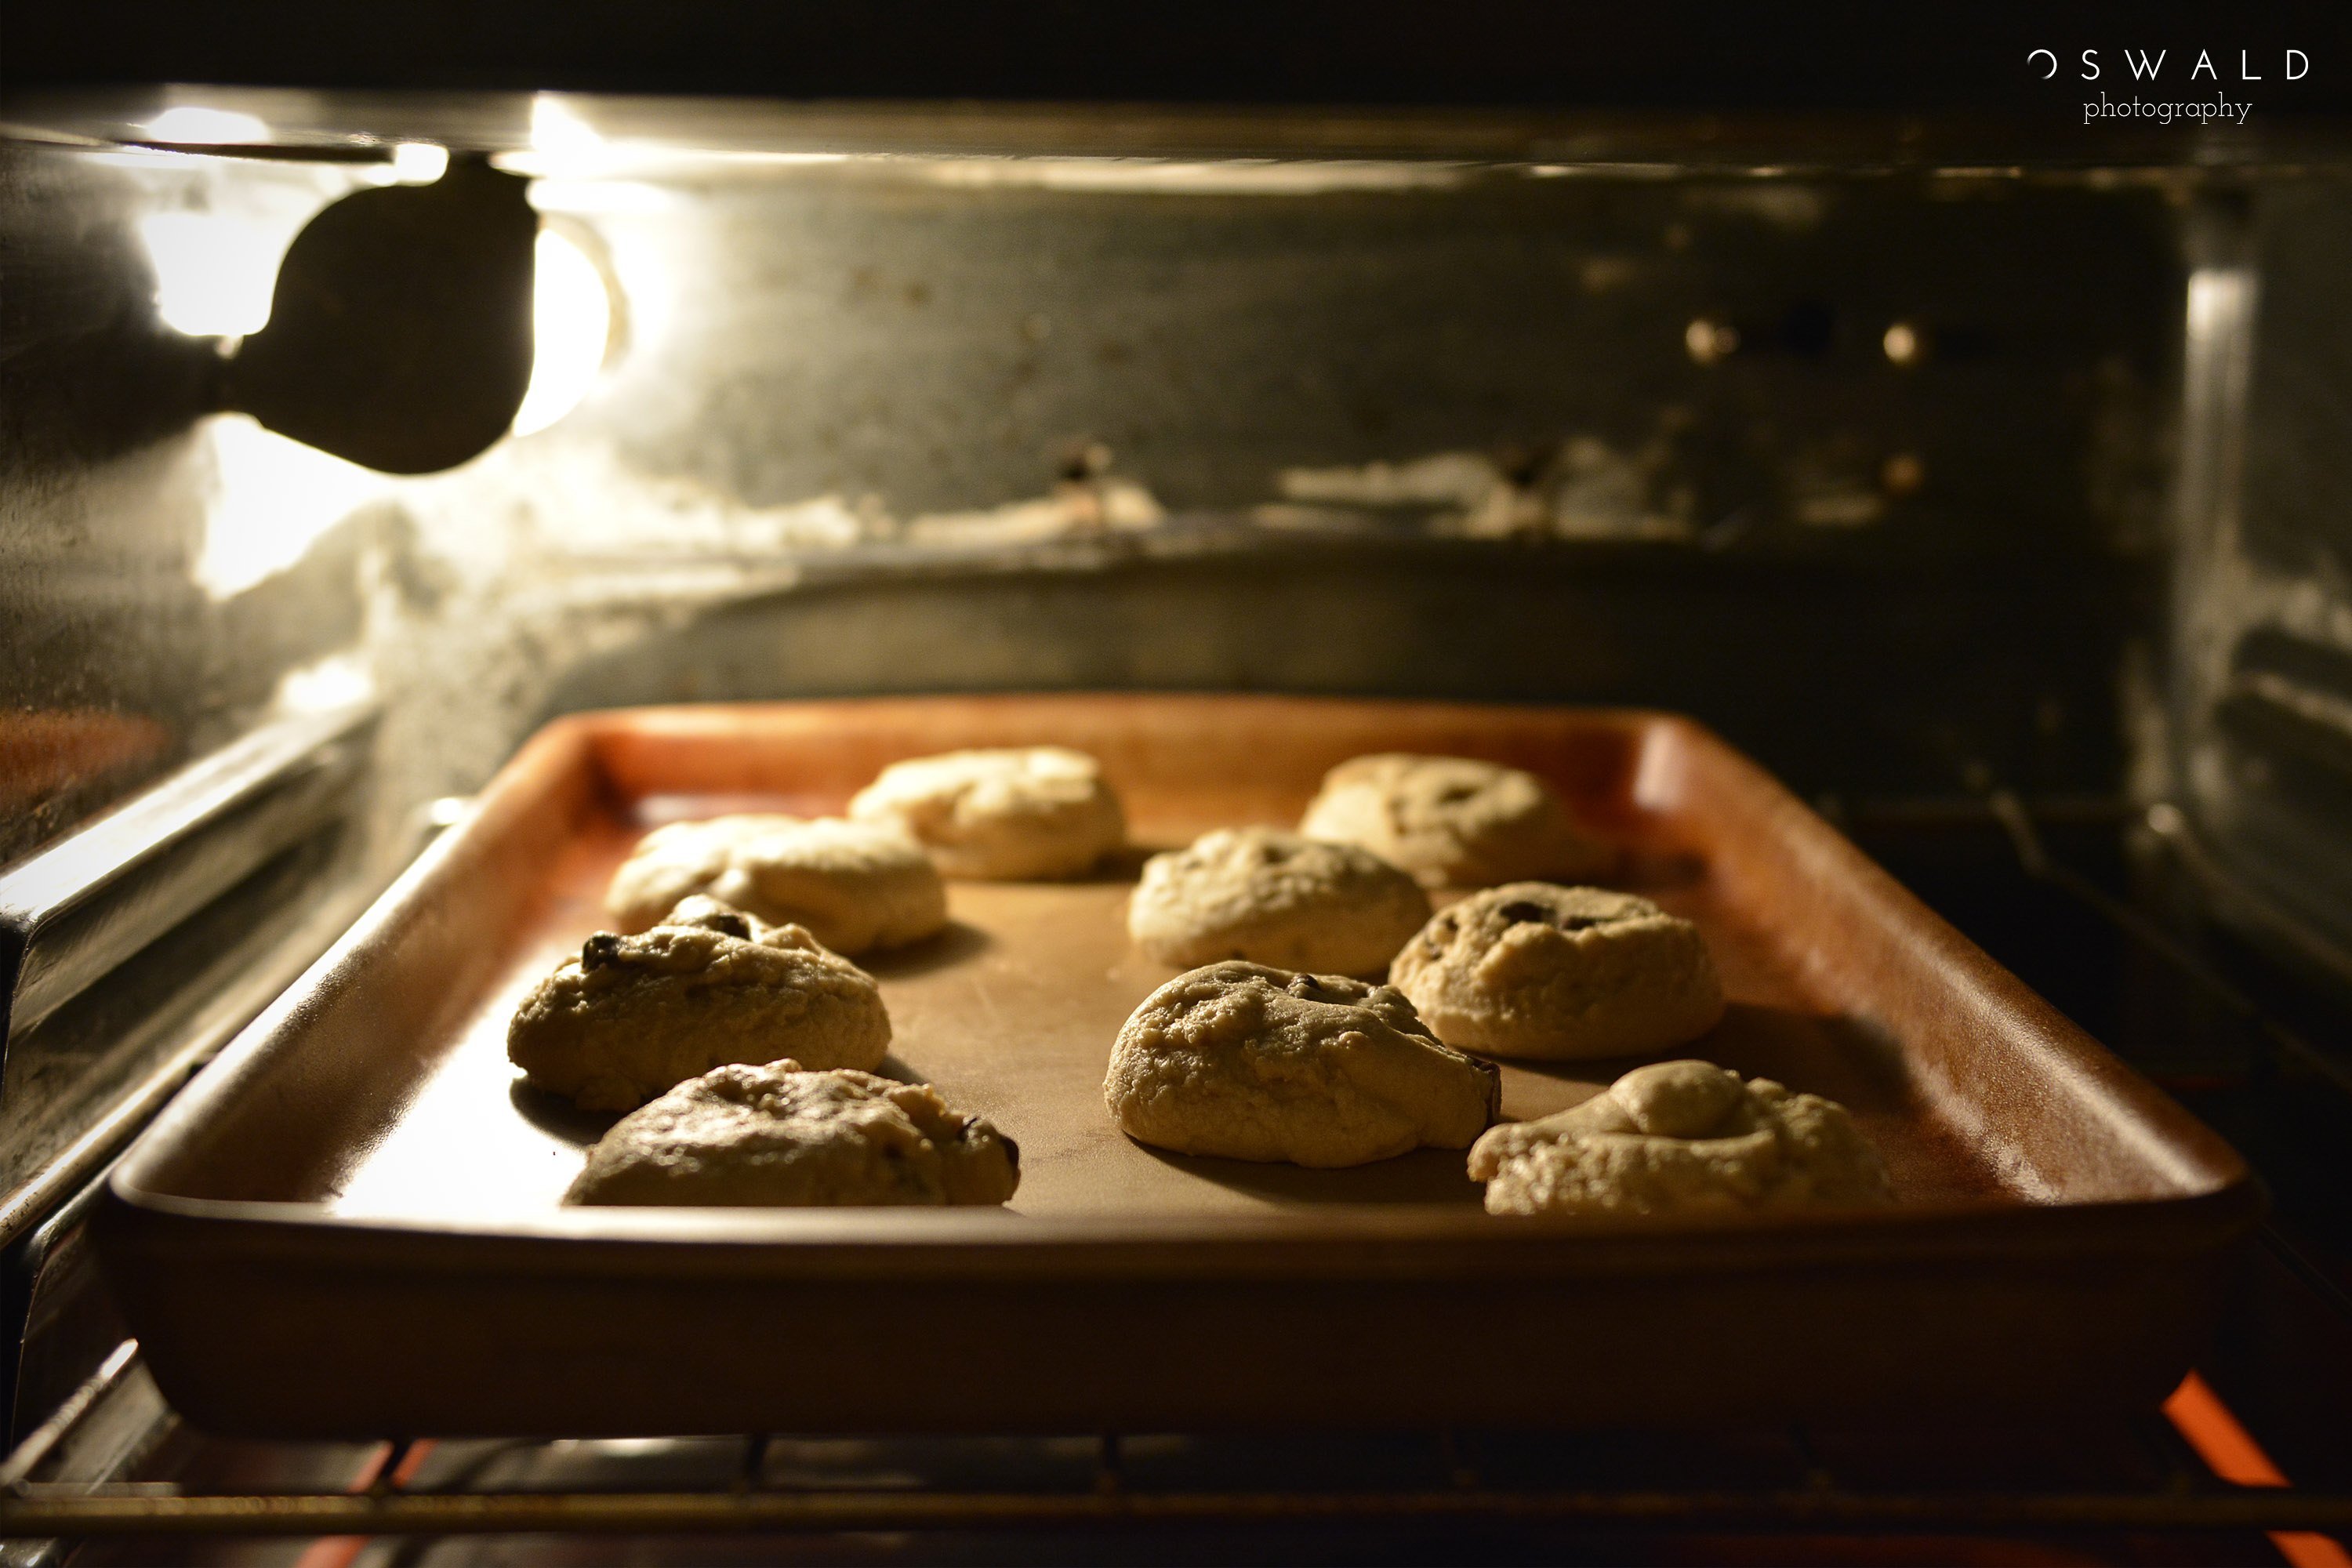 A photograph of chocolate chip cookies on a baking sheet baking inside an oven